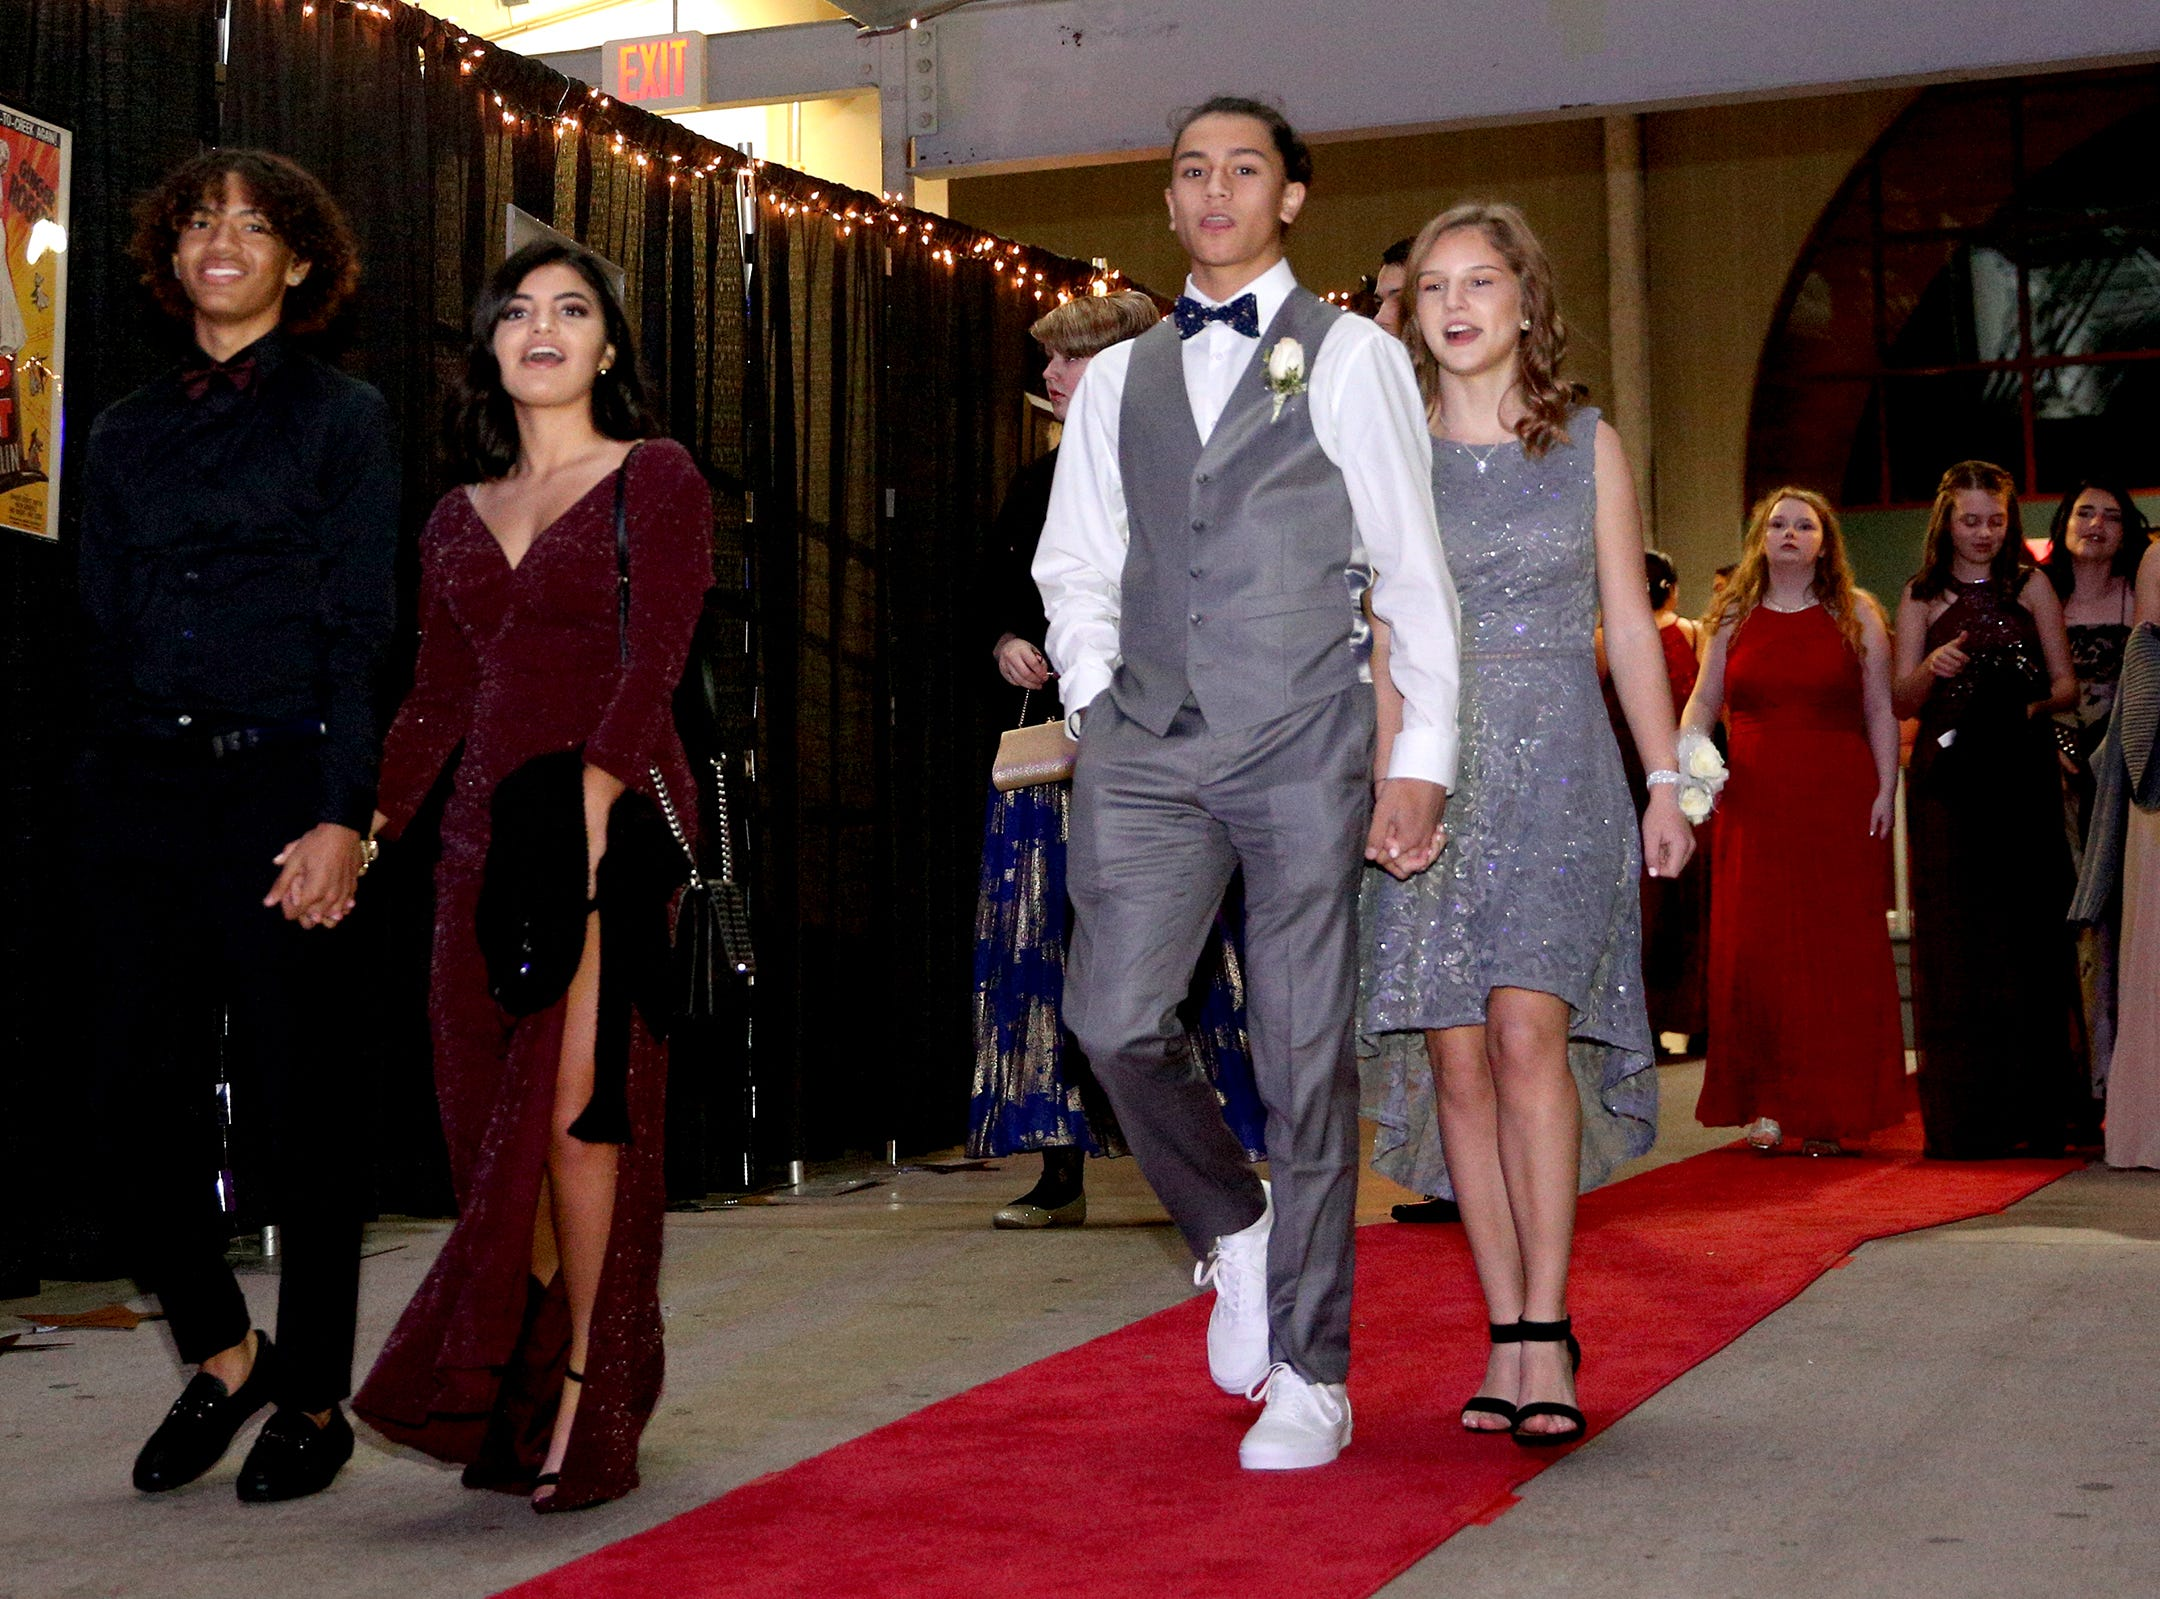 Students walk the red carpet as they enter the dance floor for the 65th annual SnoBall at the Oregon State Fairgrounds Pavilion in Salem on Saturday, Dec. 1, 2018.